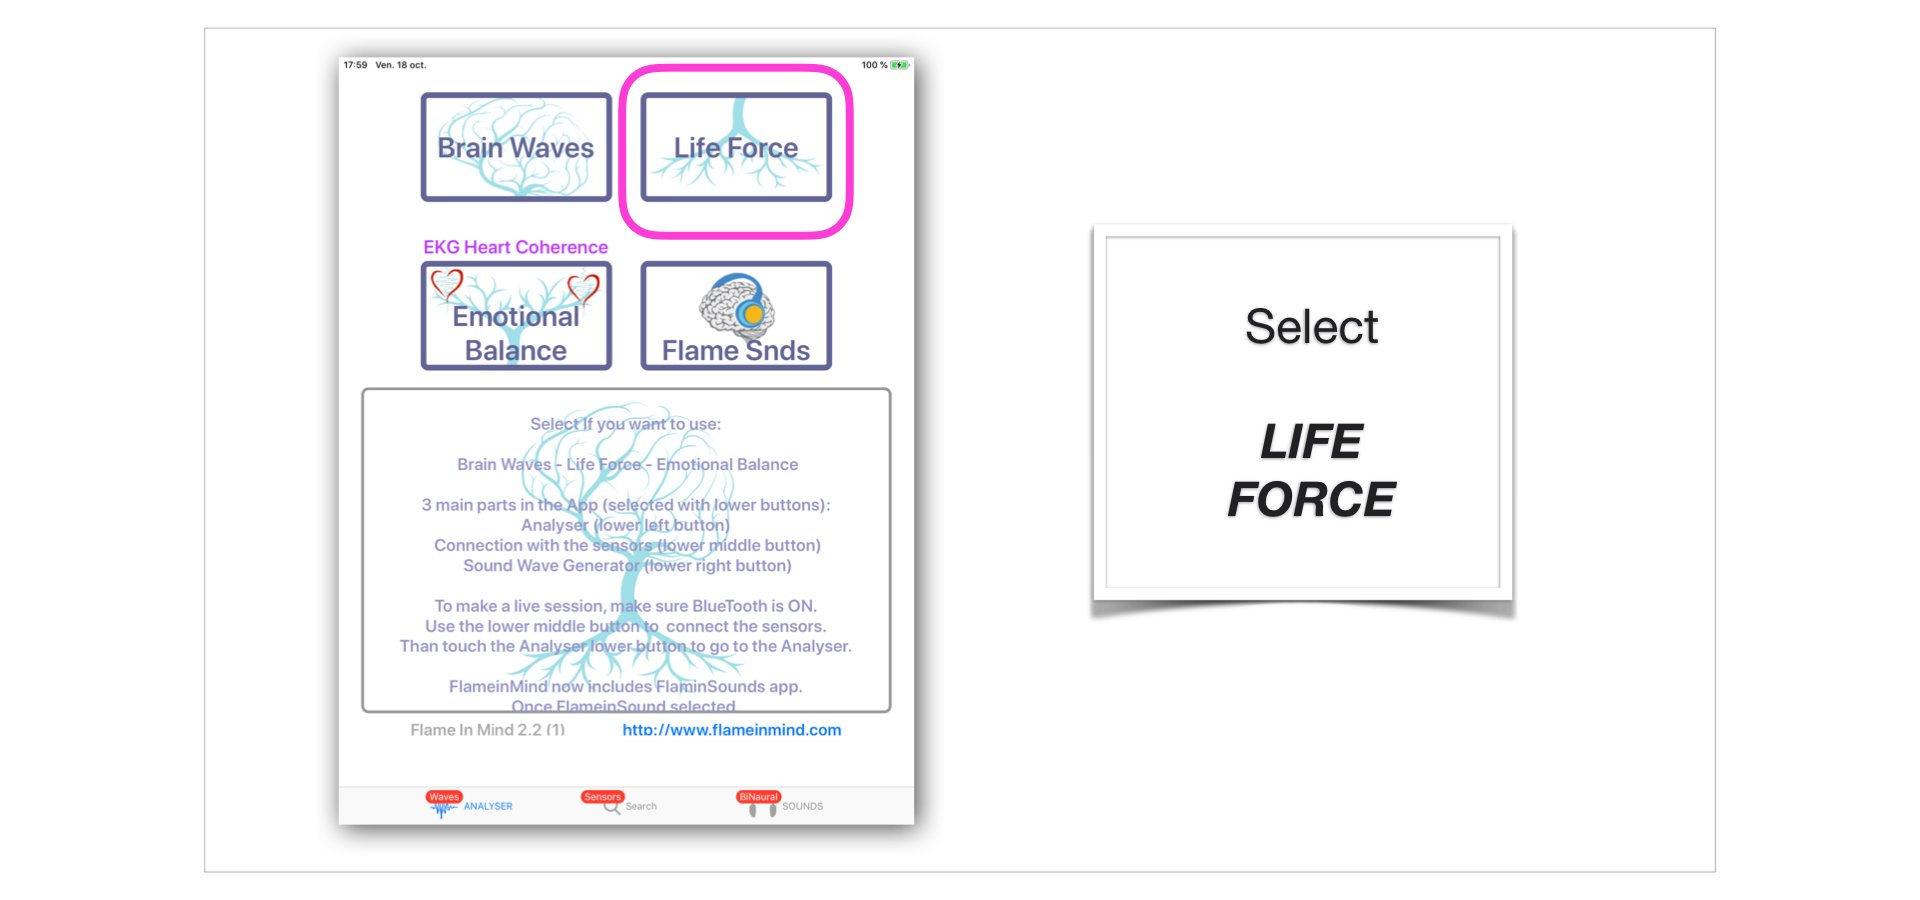 LIFE FORCE Manual 191020.006